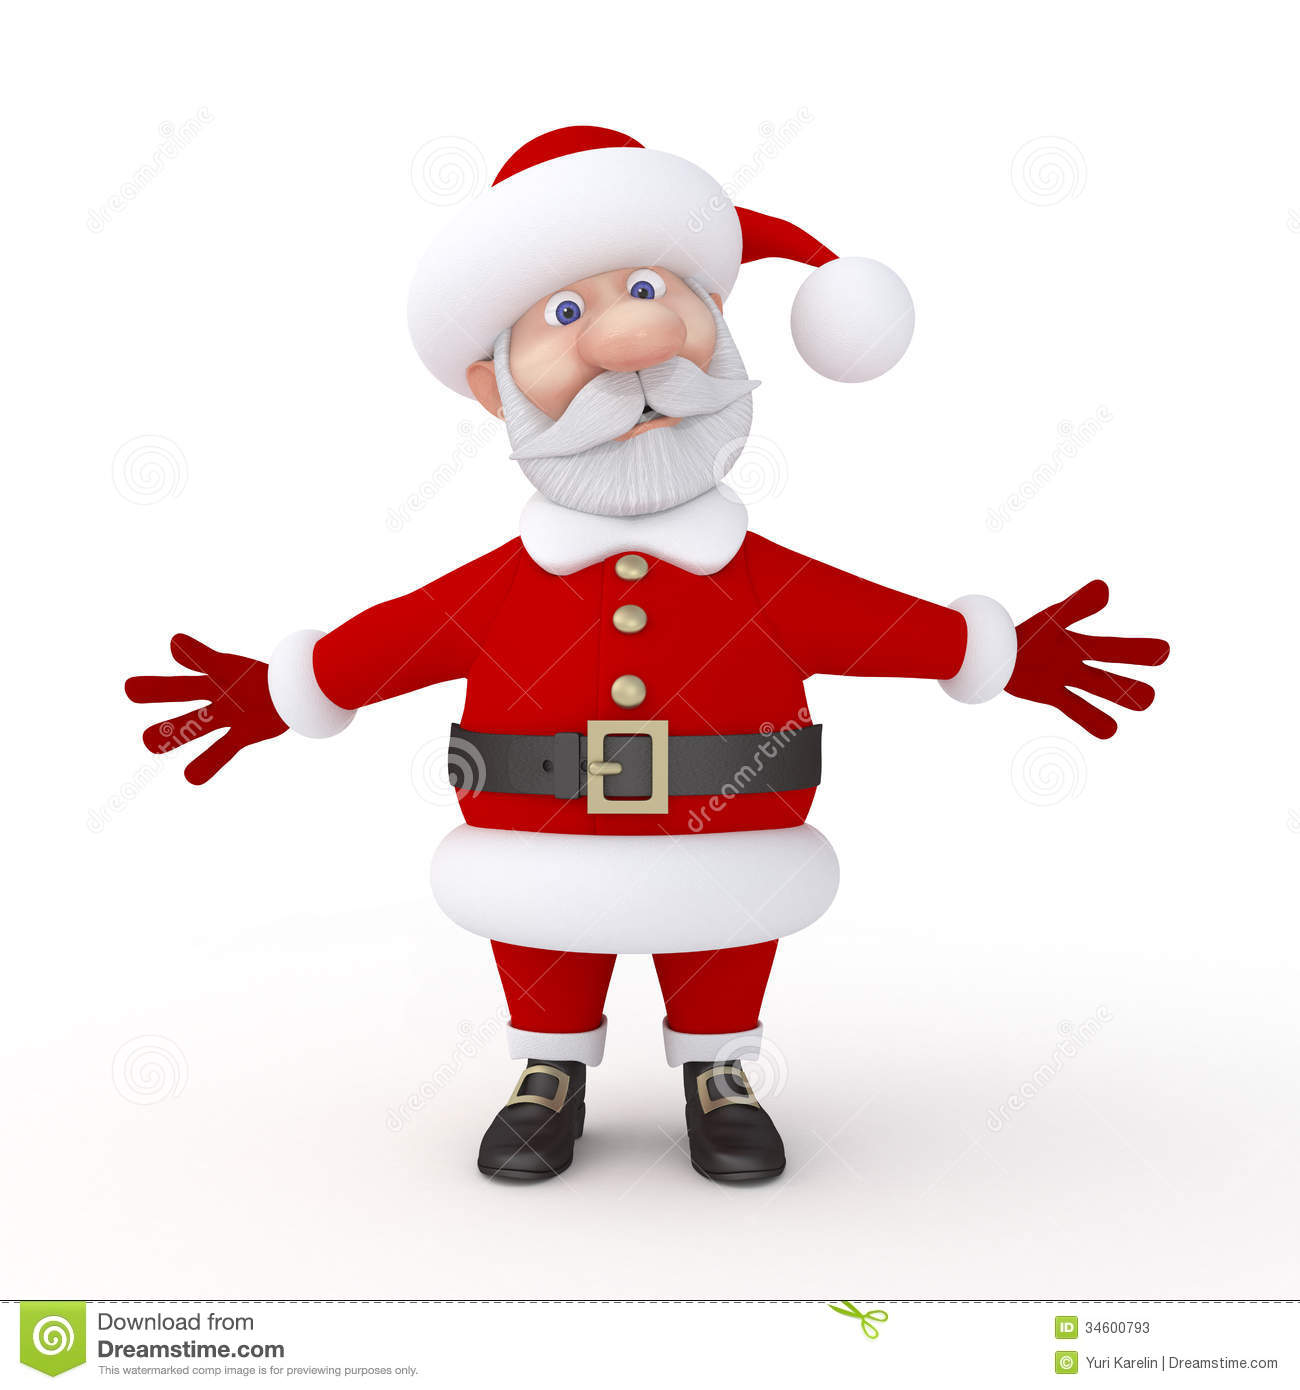 toolbar creator galleries related christmas holiday images clip art ...